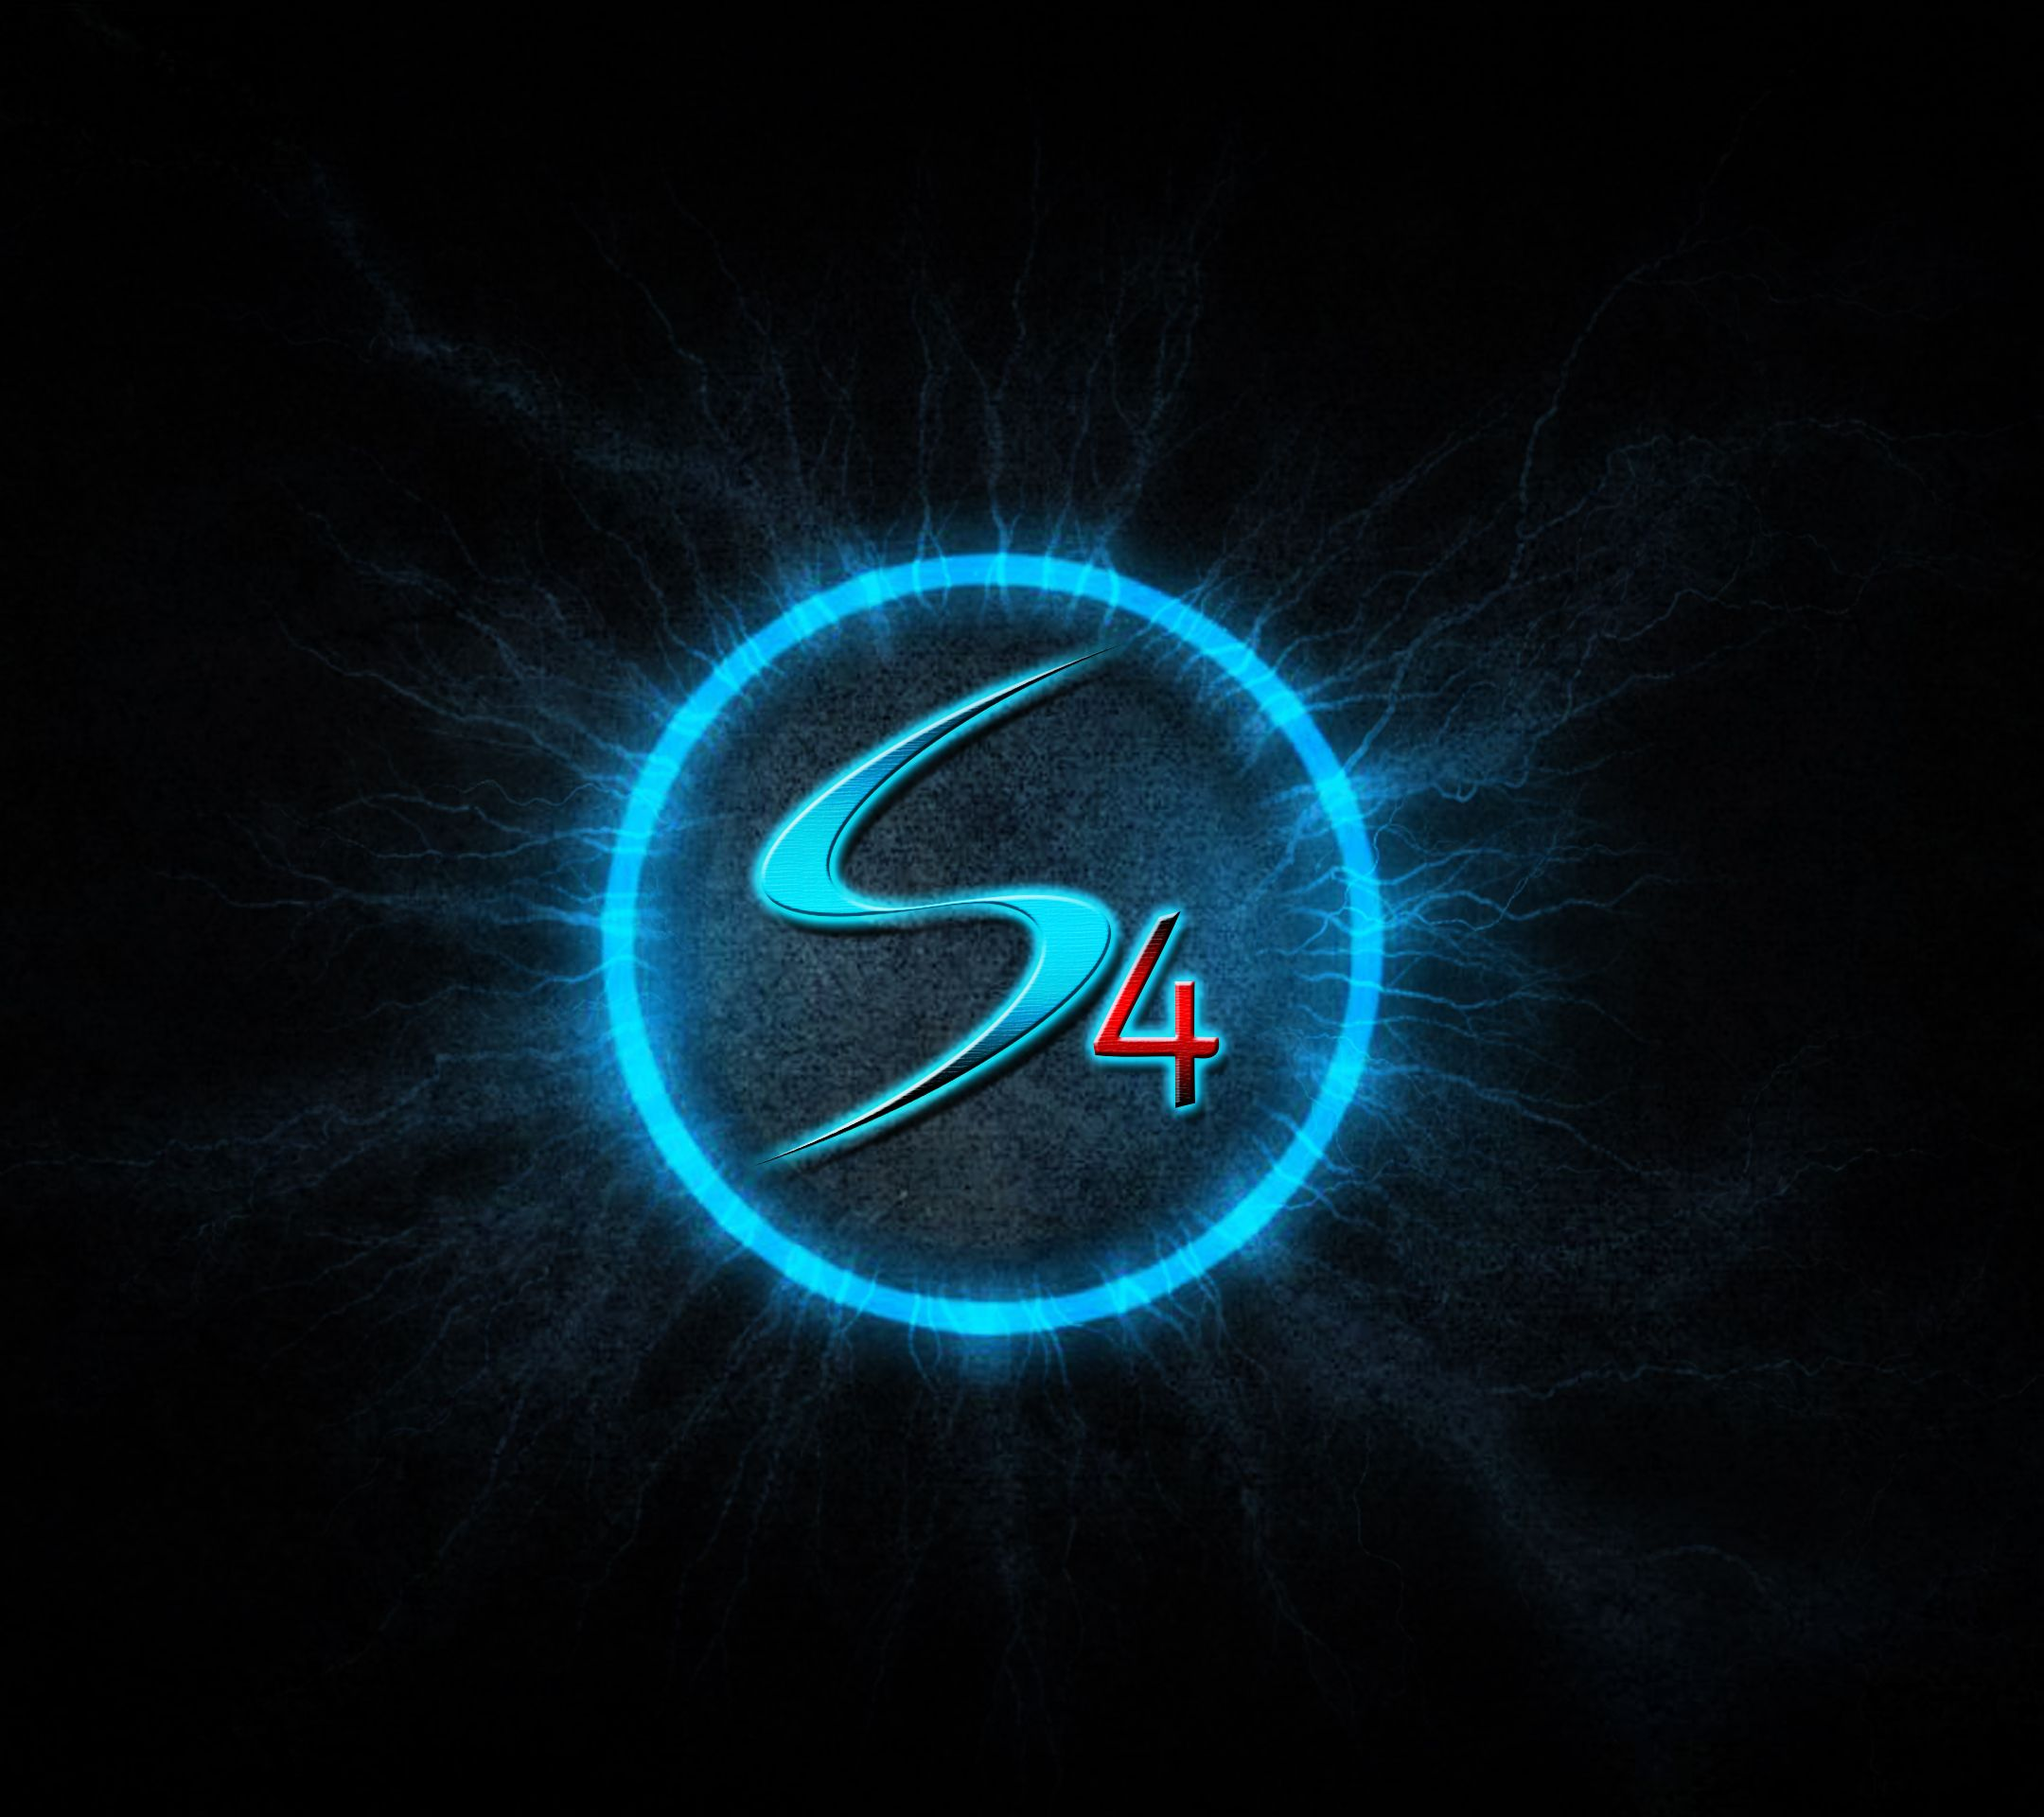 s logo hd wallpaper - passionx